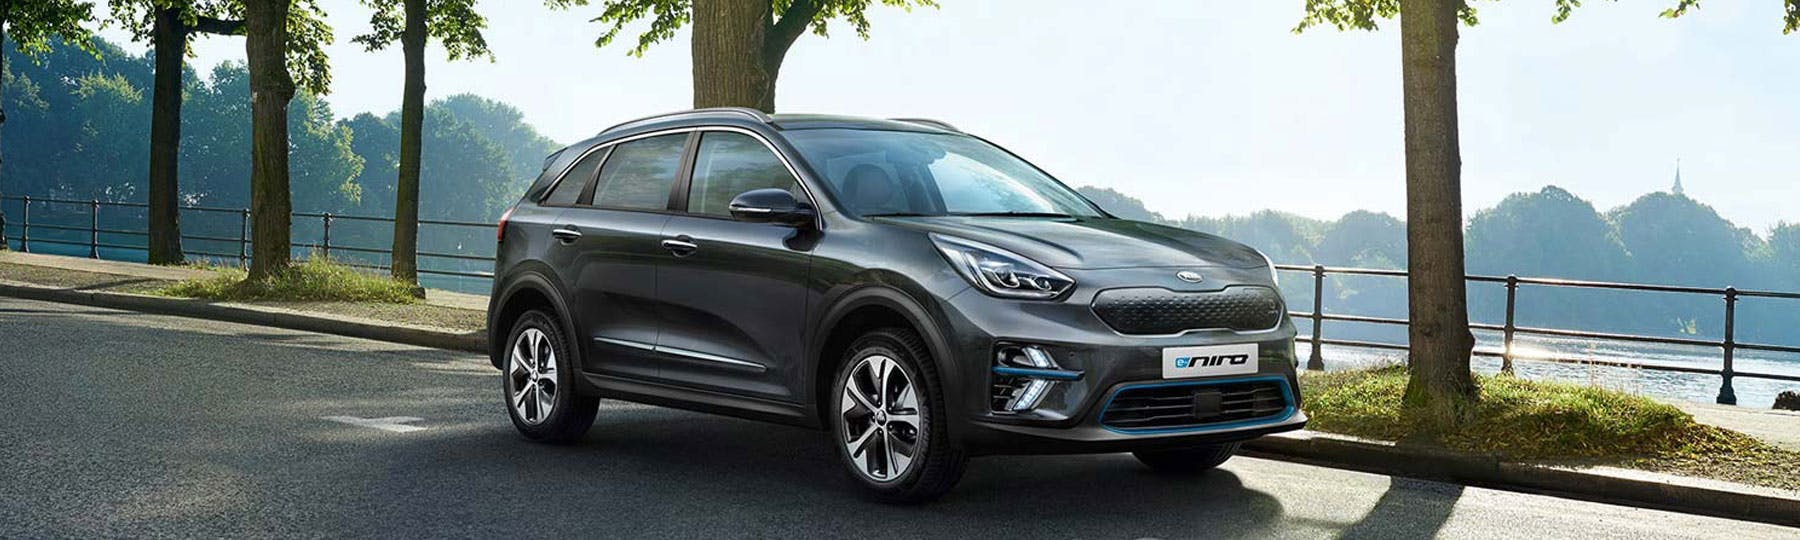 All-New Kia e-Niro